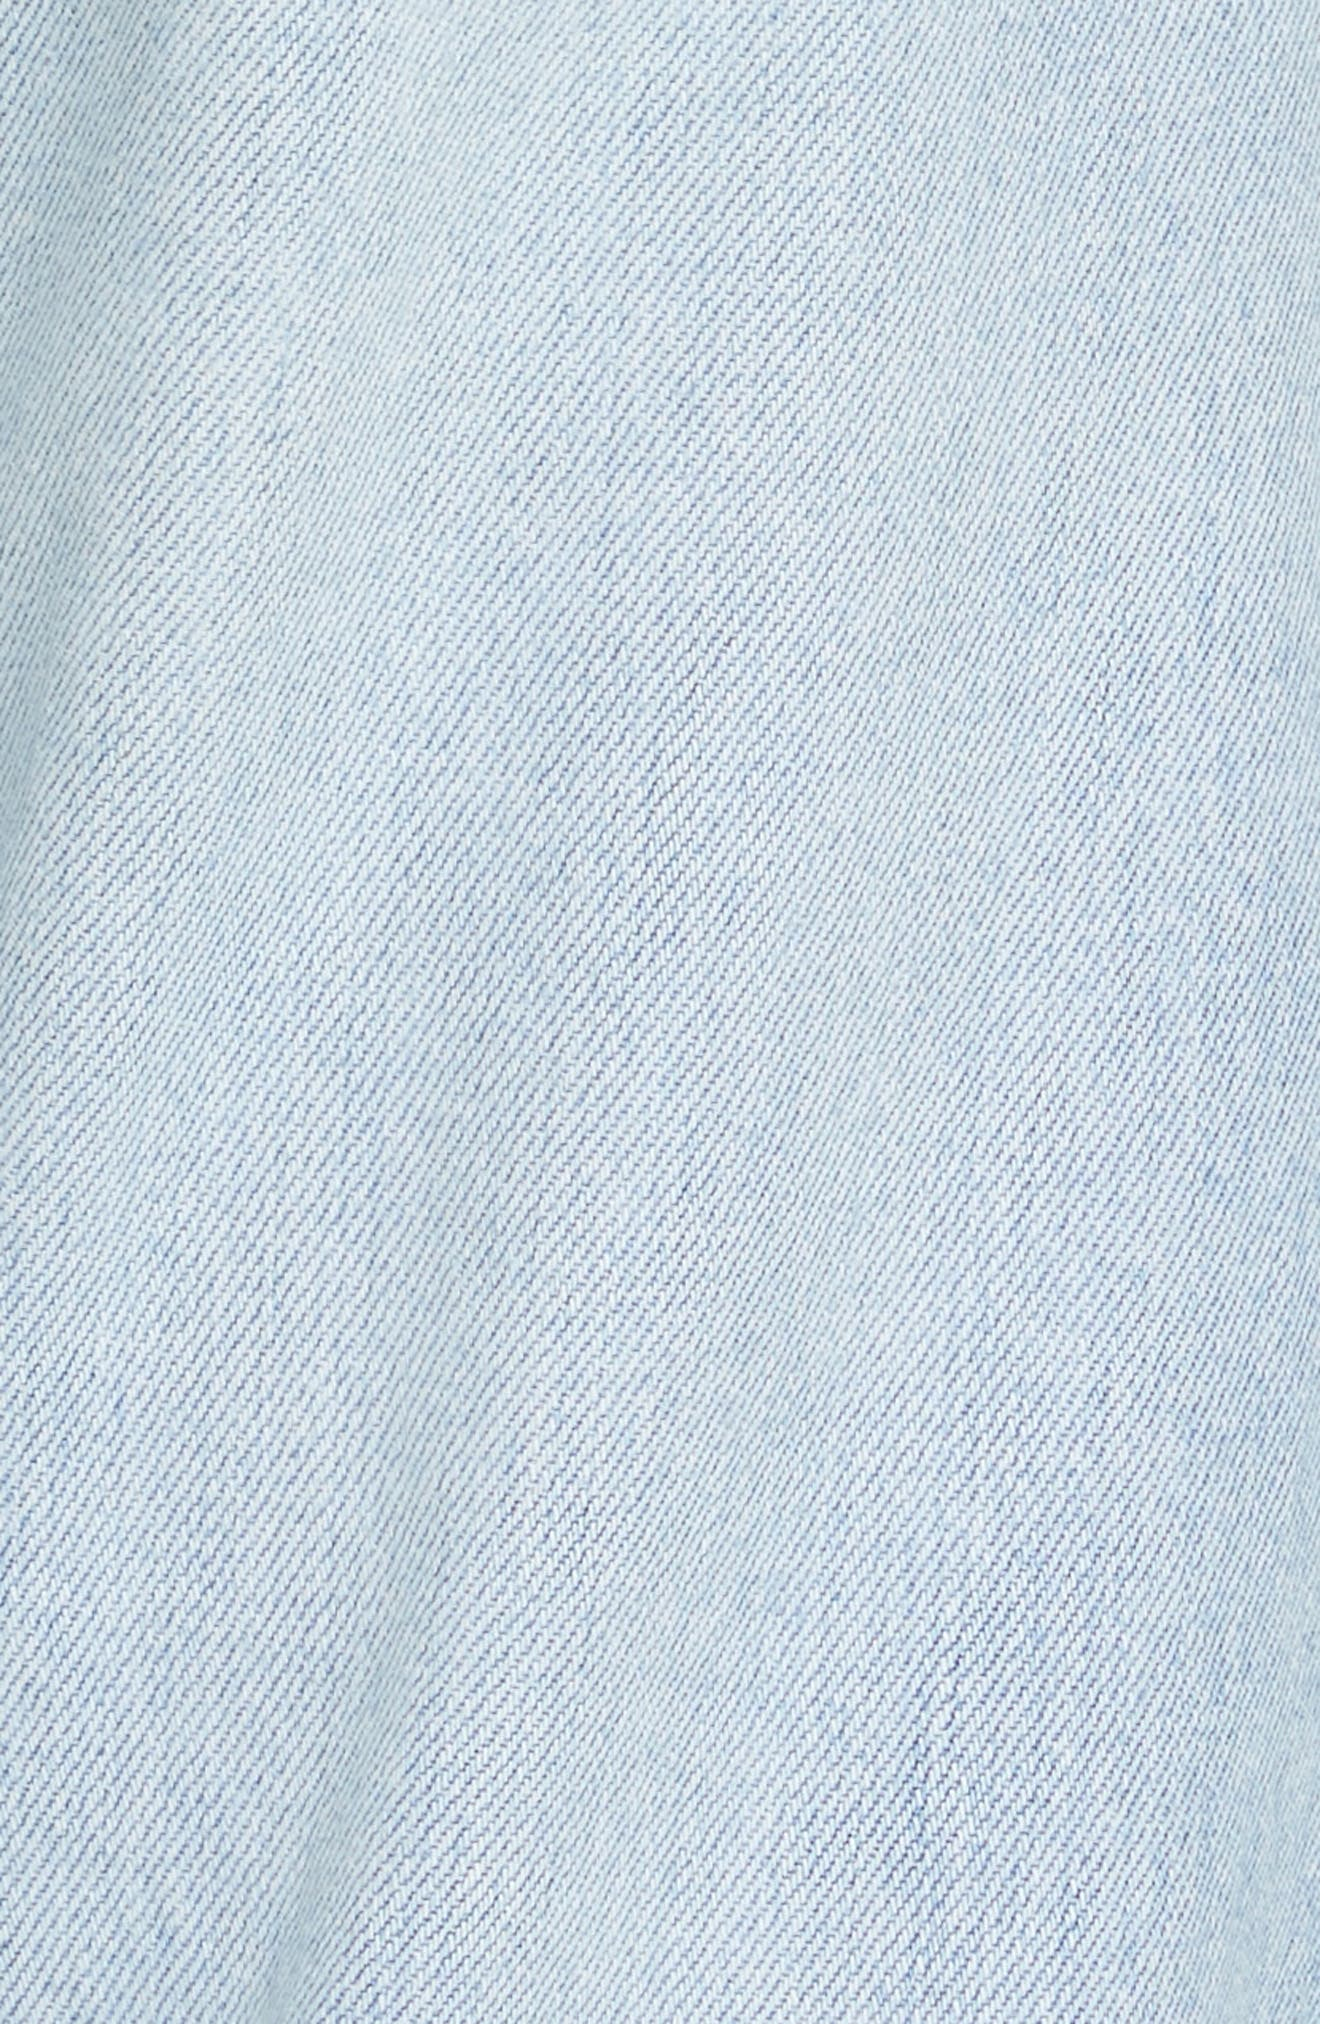 Reconstructed Crop Jeans,                             Alternate thumbnail 5, color,                             400